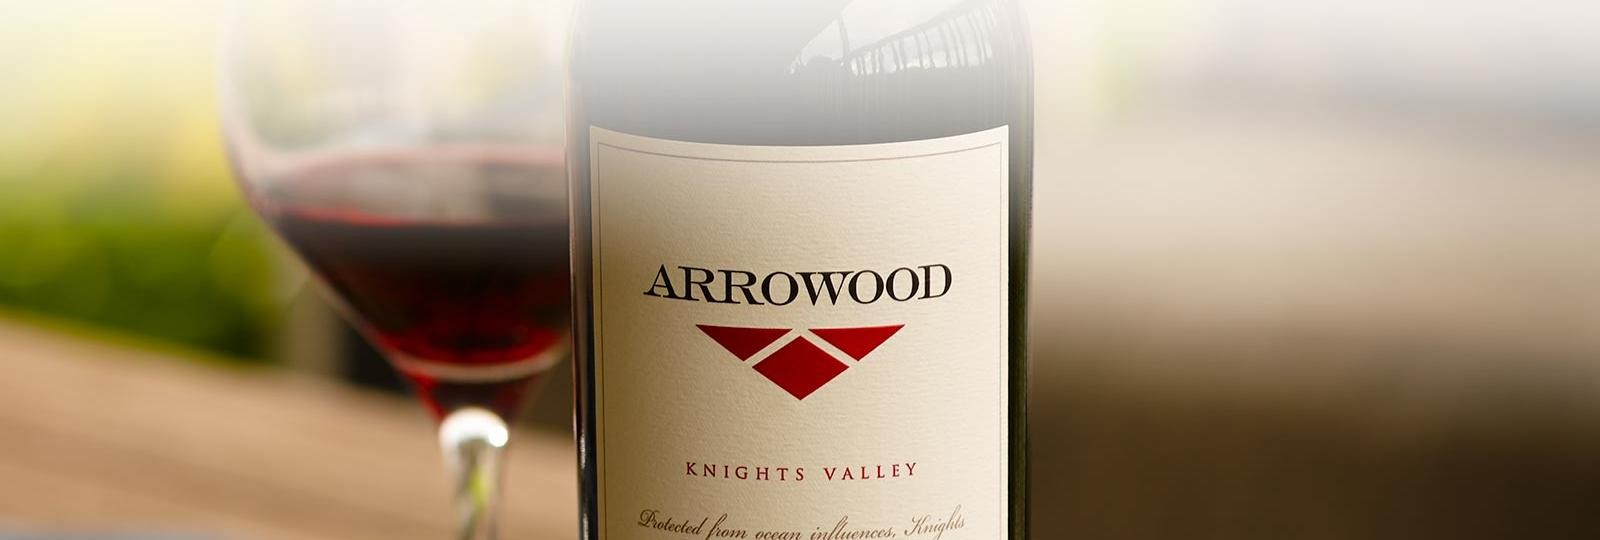 Arrowood red wine with glass